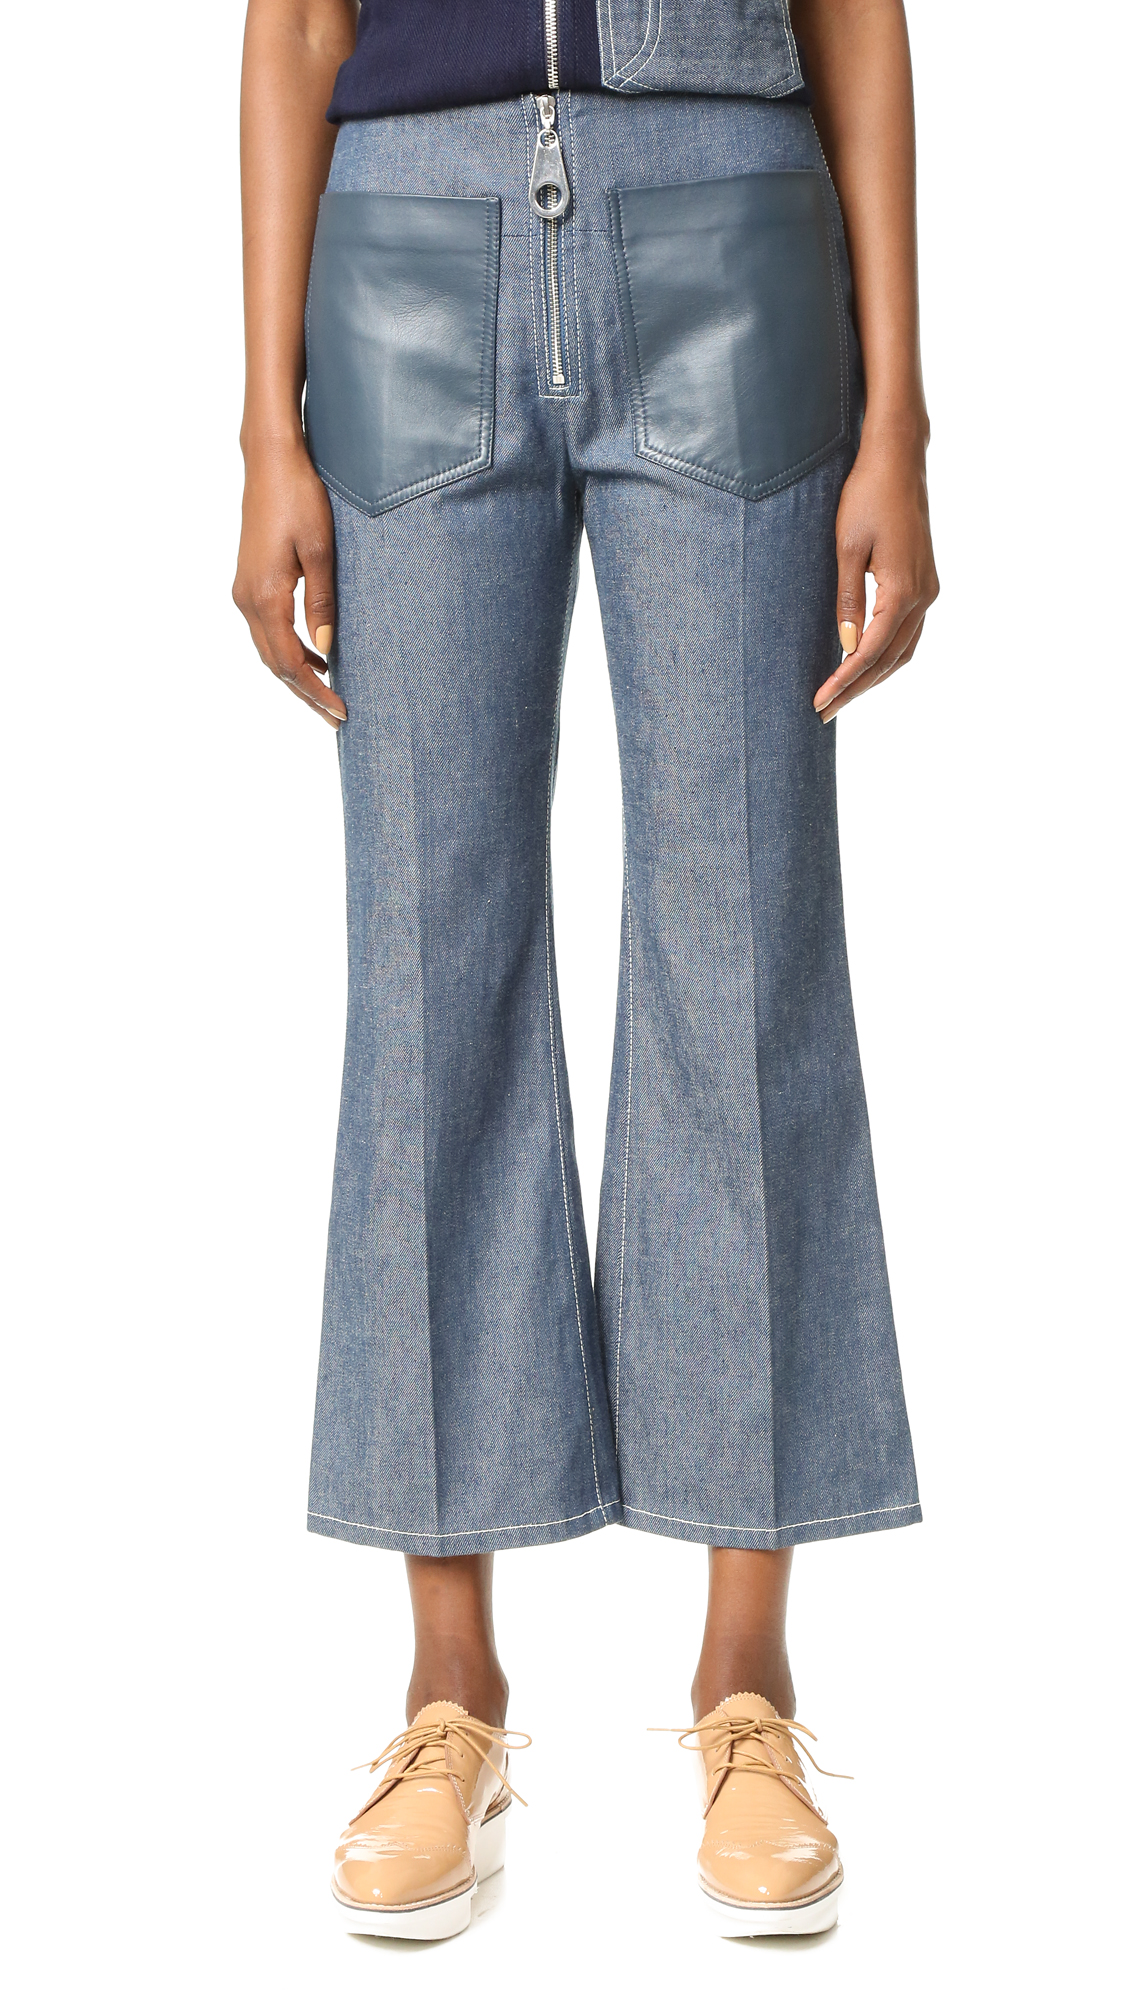 High rise EDUN denim pants with a cropped, slightly flared profile. Tonal leather patch pockets and exposed zip fly. Contrast reinforced topstitching. Fabric: Raw denim. Shell: 100% cotton. Trim: 100% lambskin. Leather clean. Imported, Kenya. Measurements Rise: 4.75in / 12